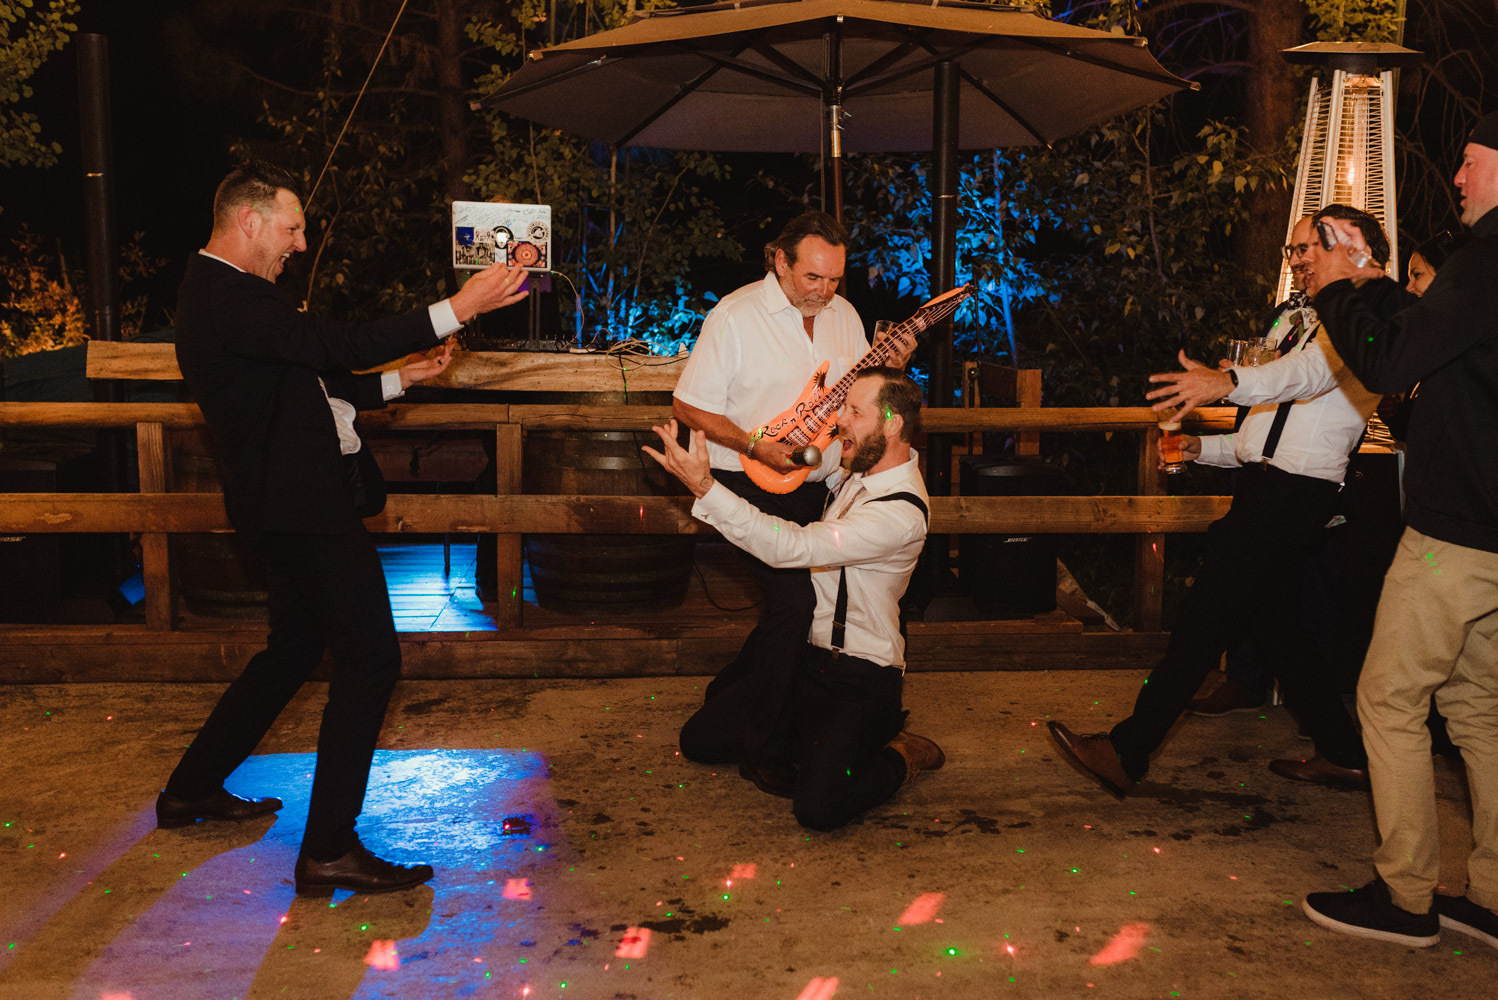 Twenty Mile House Wedding Photographer, photo of guests playing with inflatable instruments